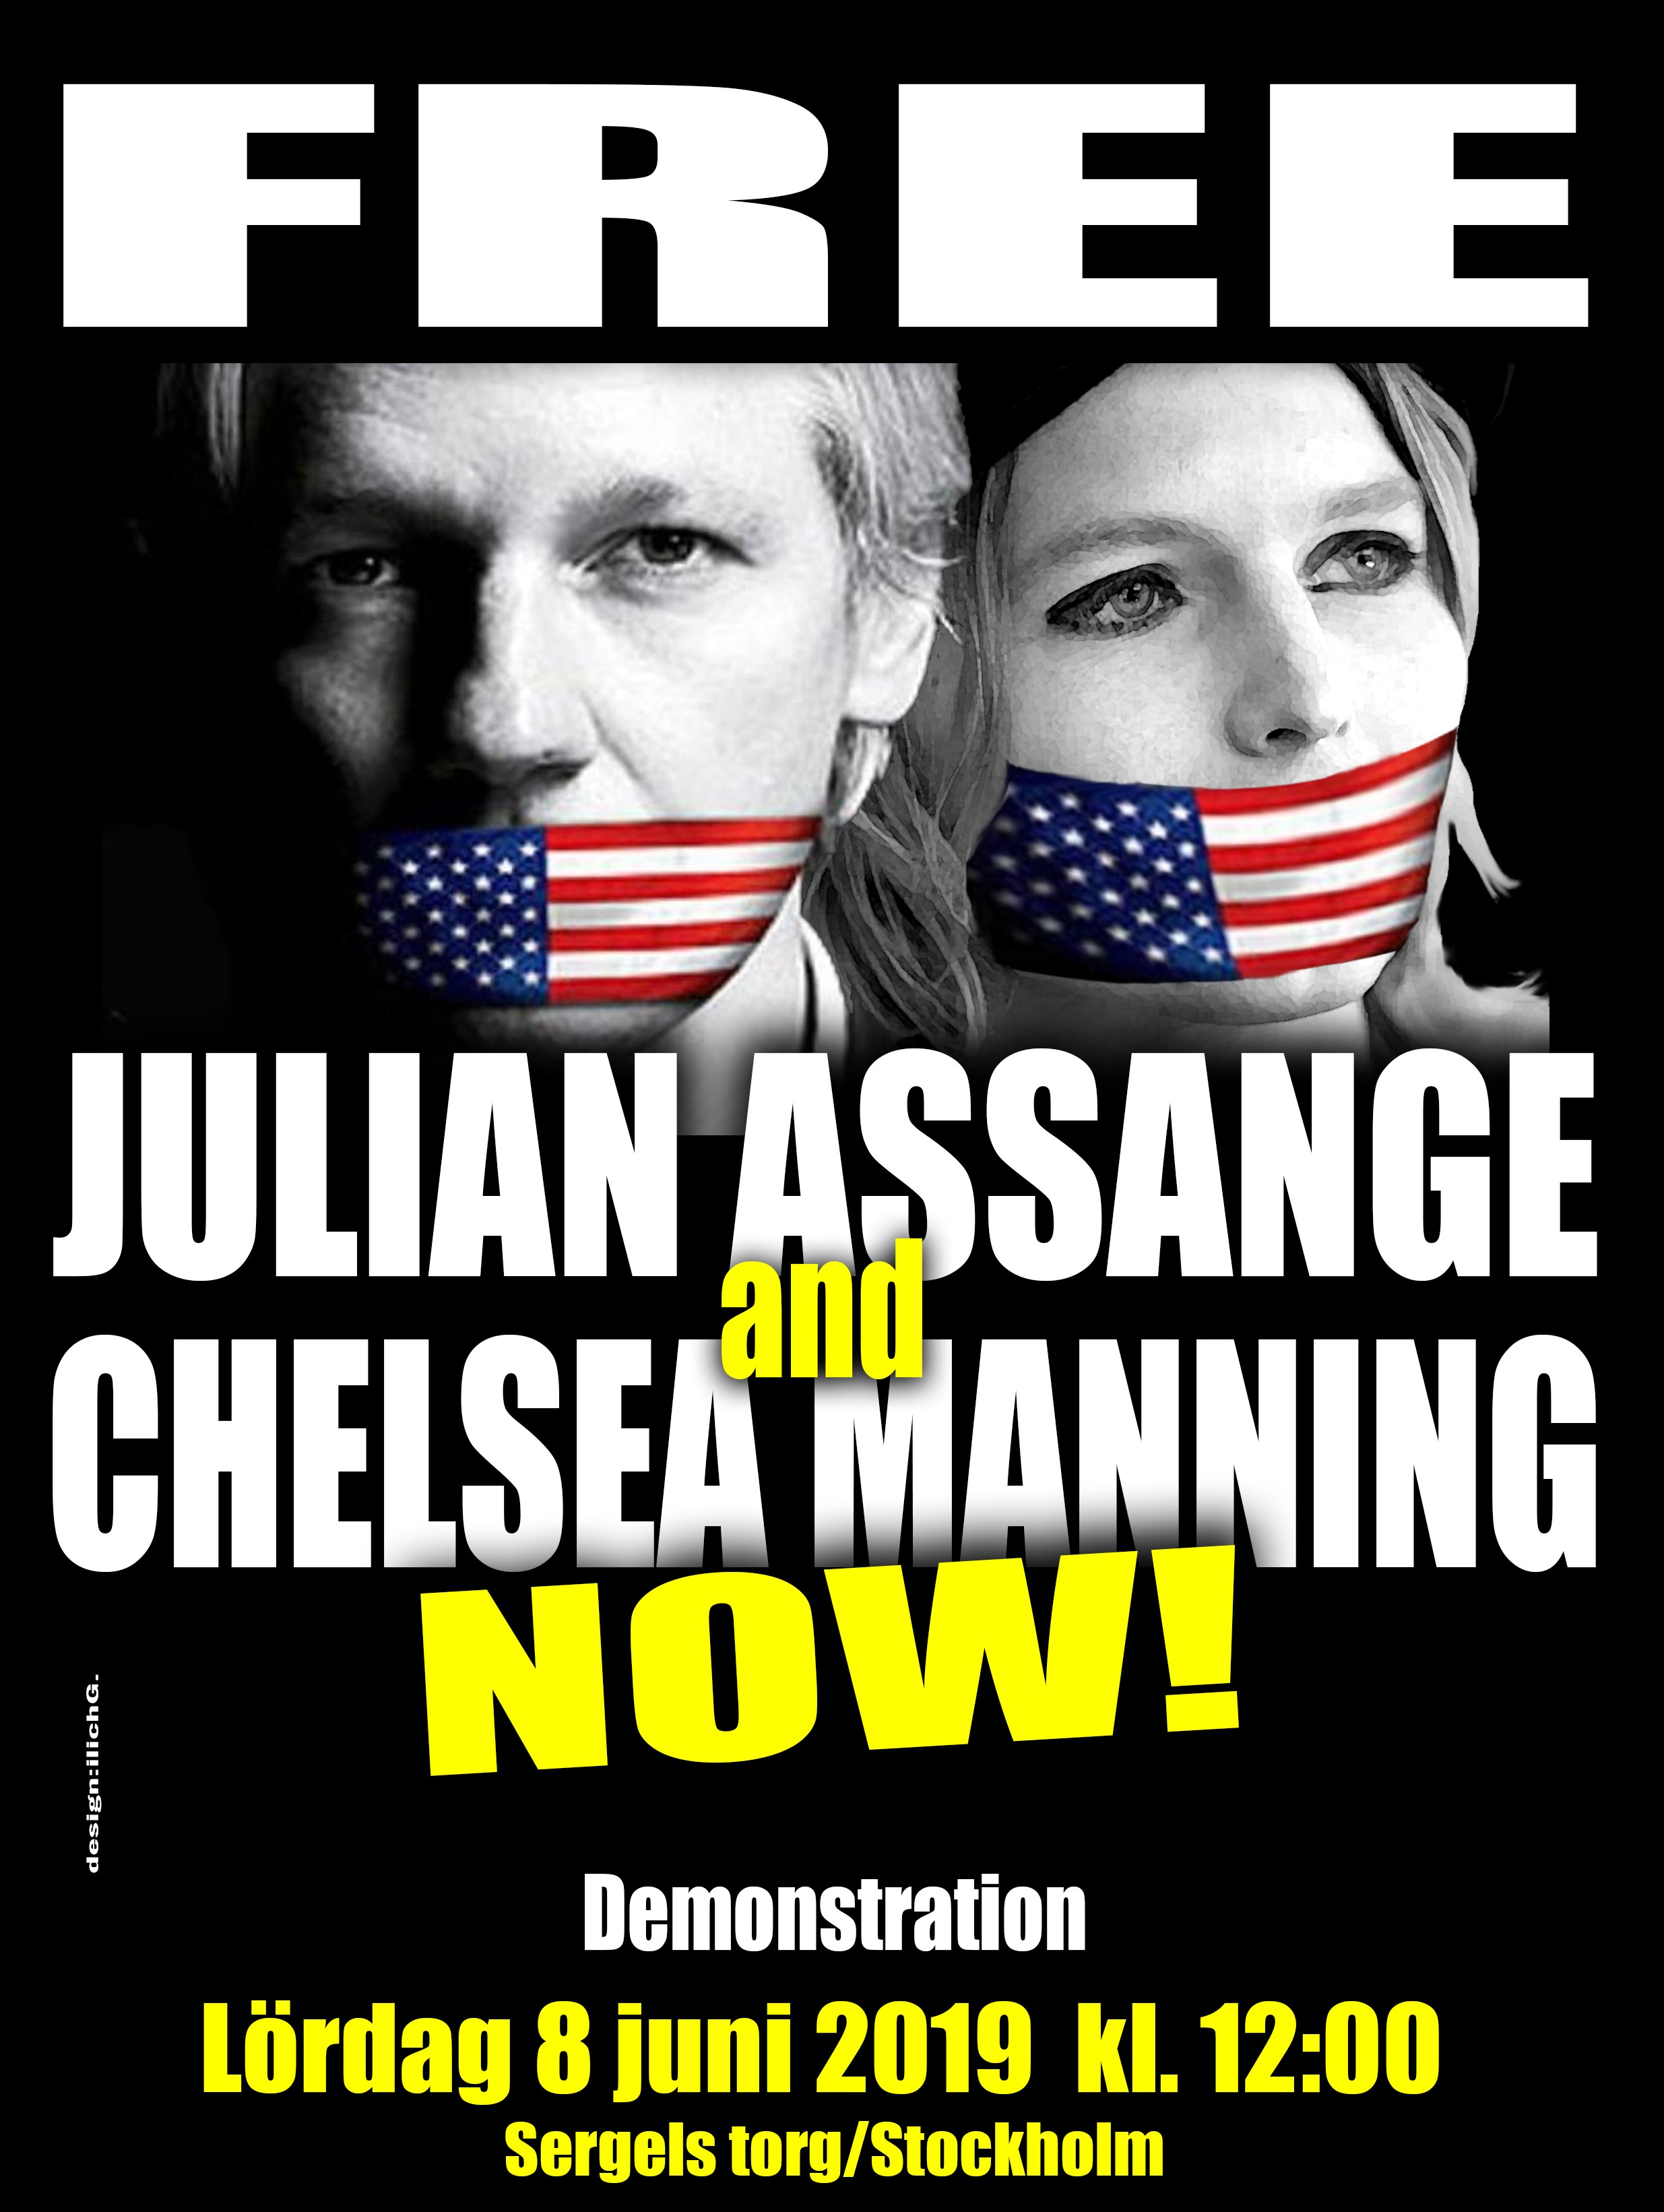 FREE JULIAN ASSANGE and CHELSEA MANNING 8 junio 2019